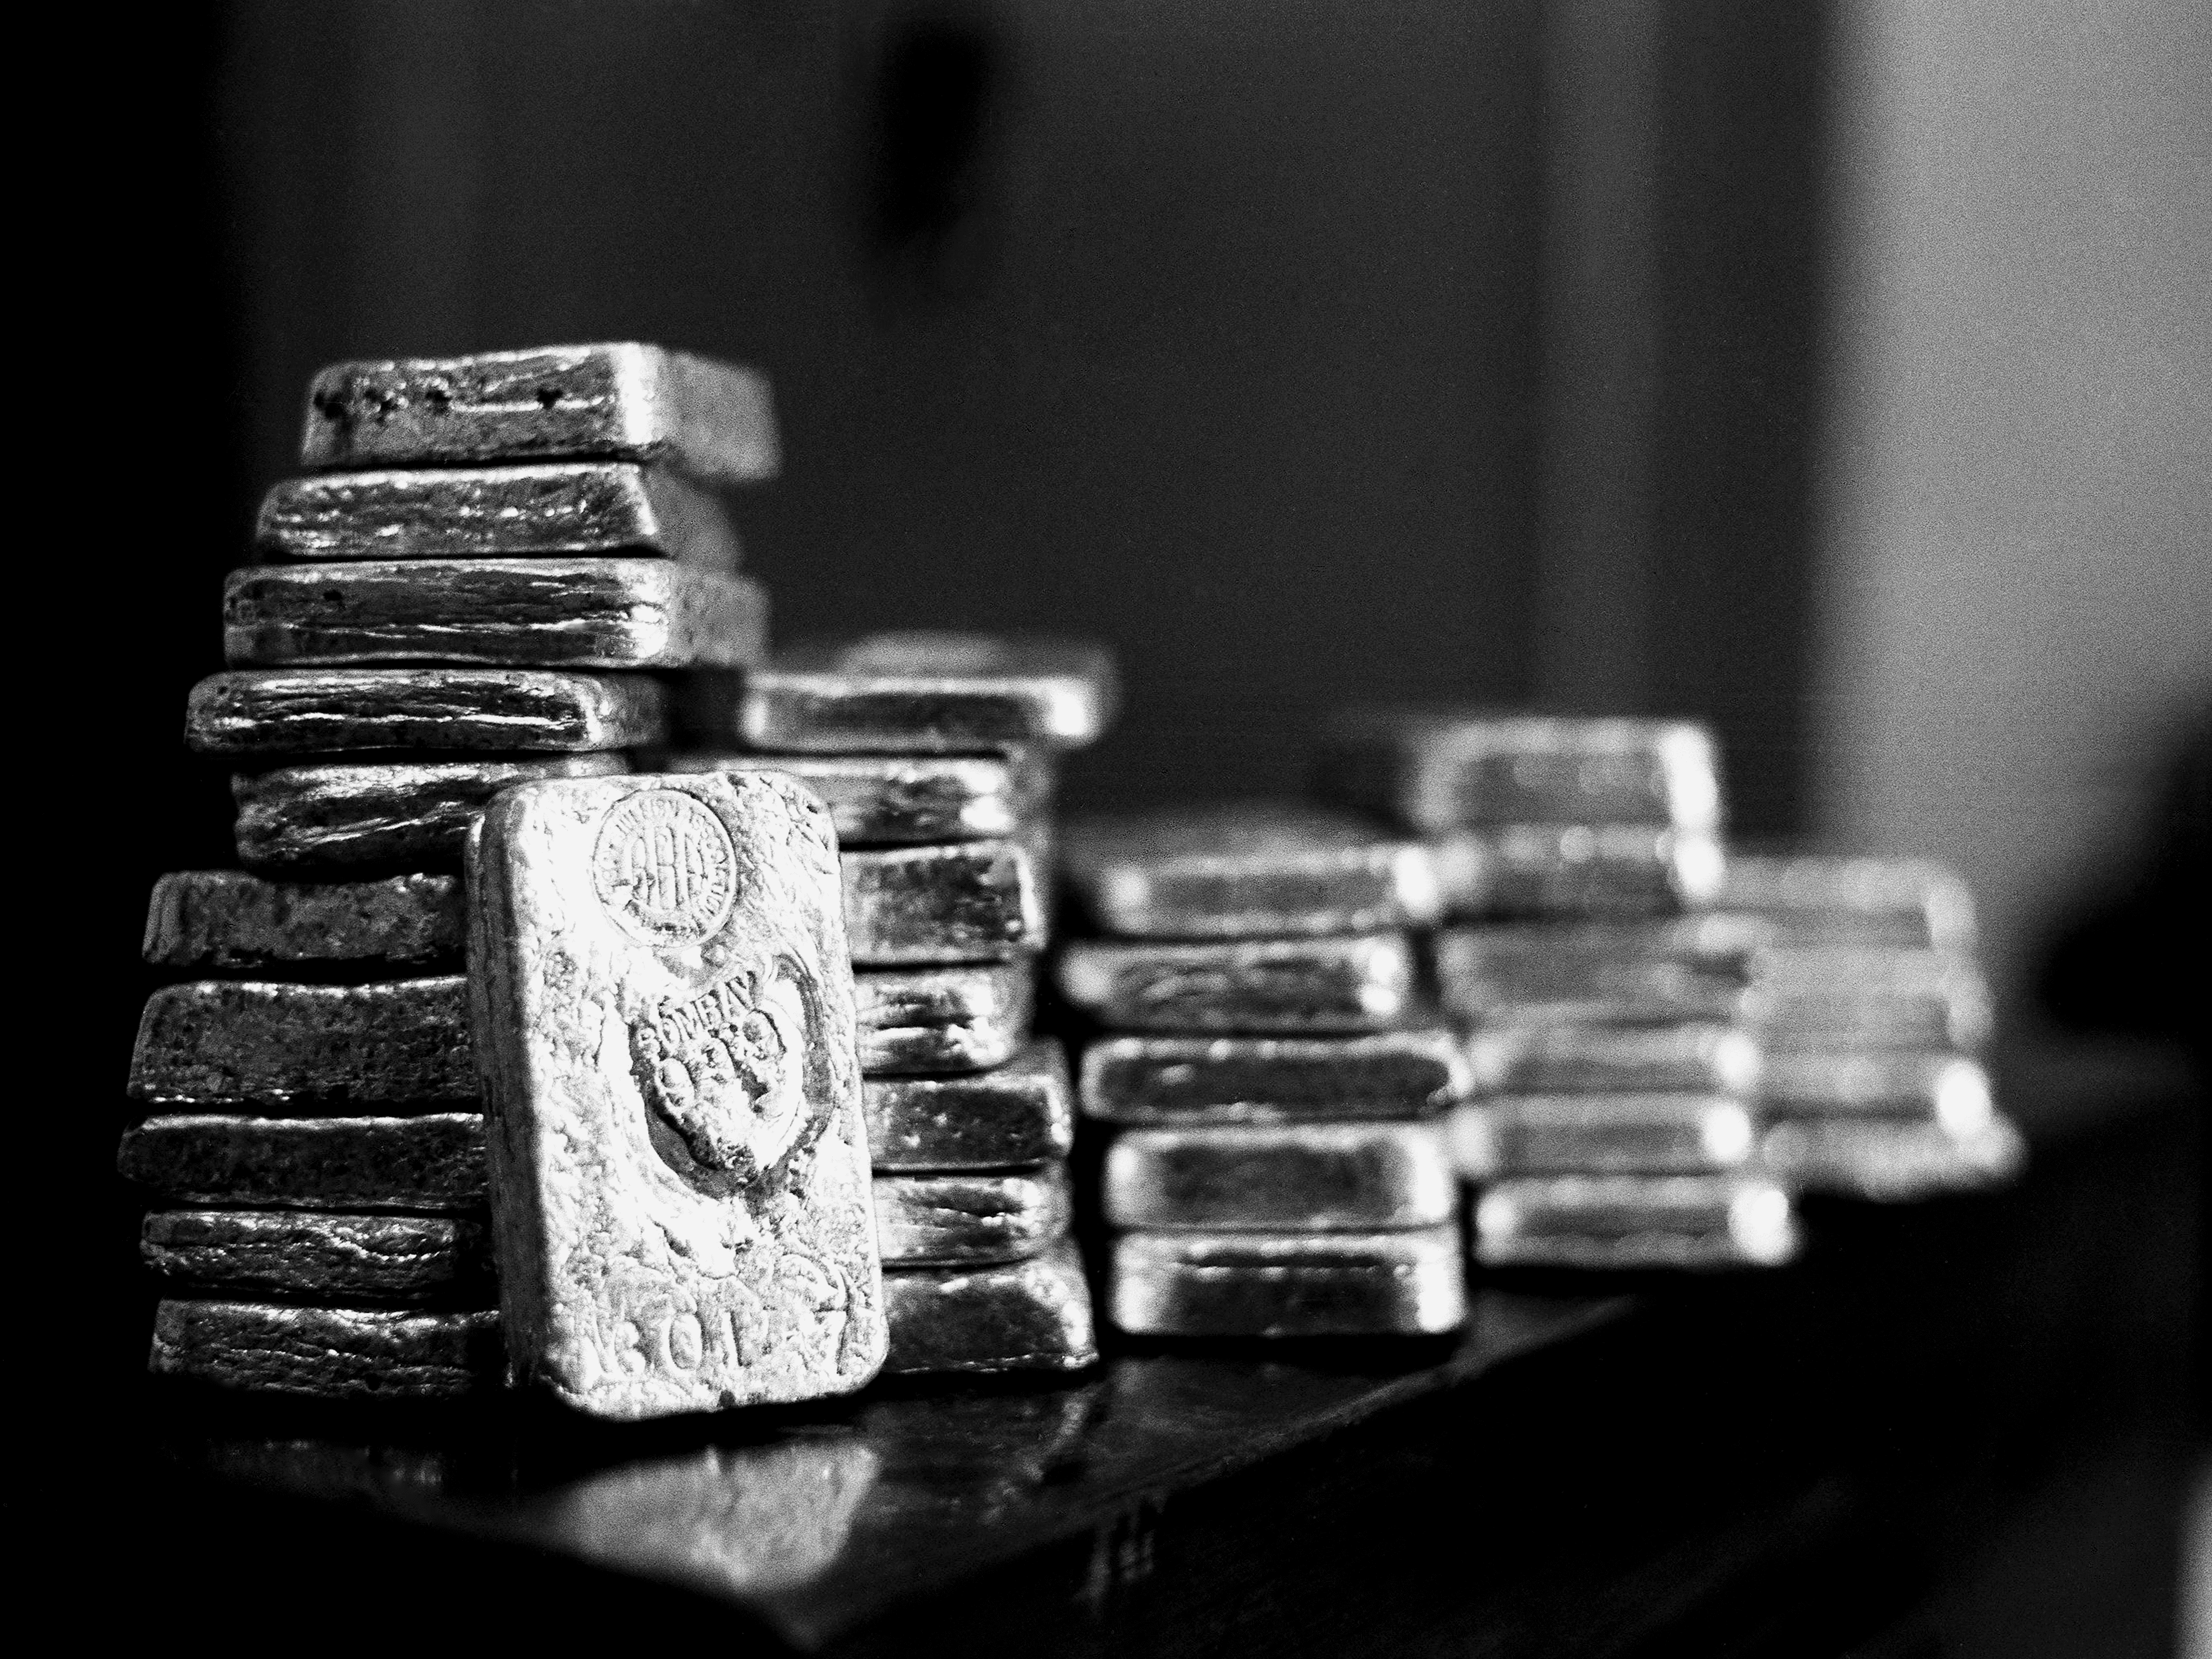 All that glitters isn't necessarily gold, as silver breaks out